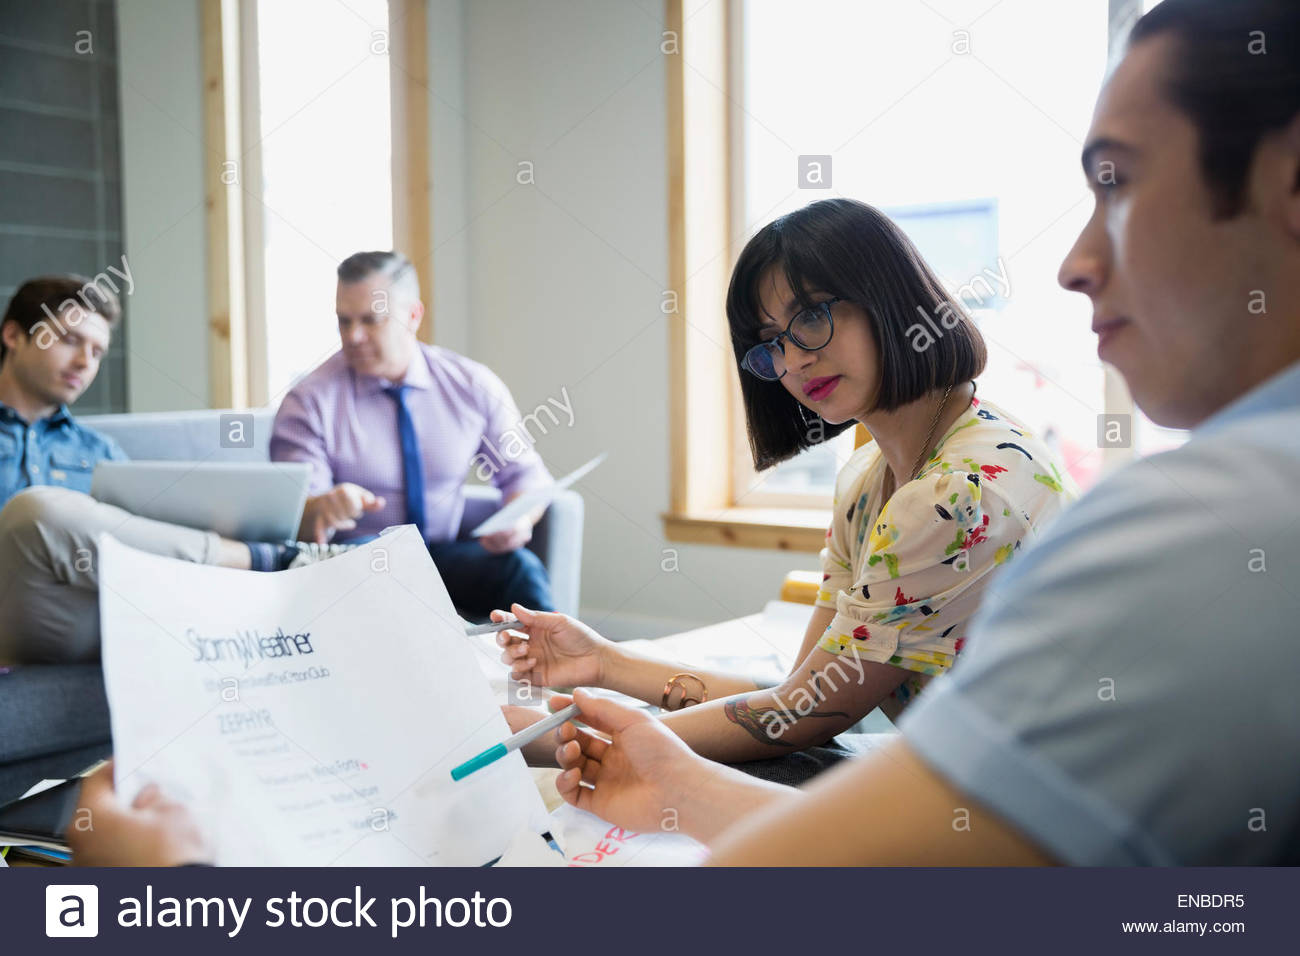 Business people reviewing paperwork, in meeting - Stock Image